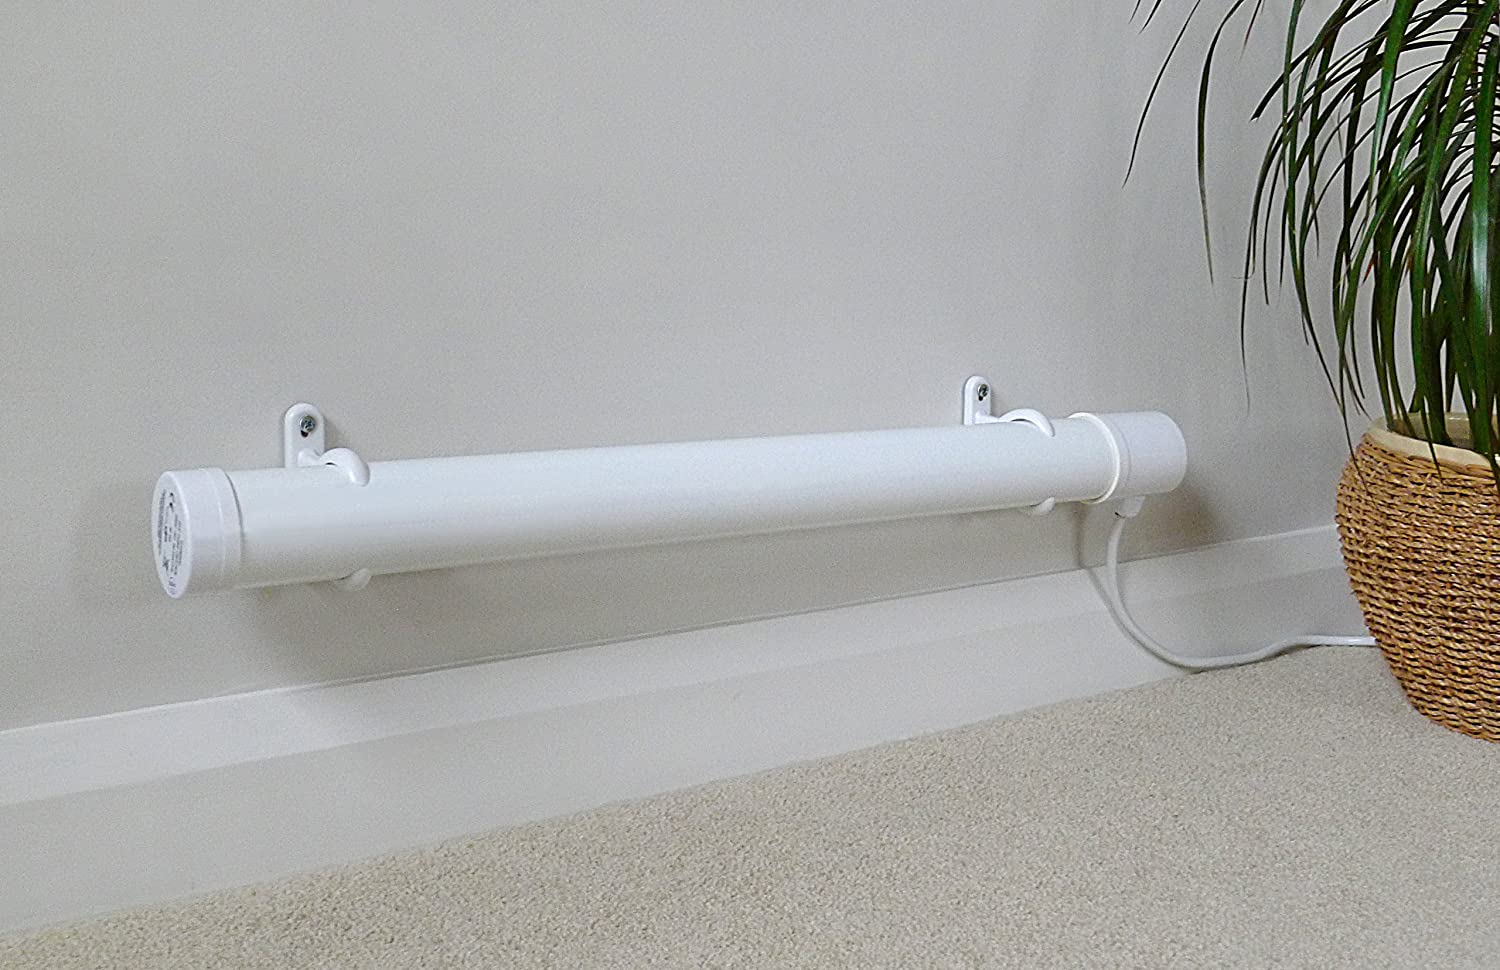 Hylite 1ft Eco Tube Heater (45W) HHT010